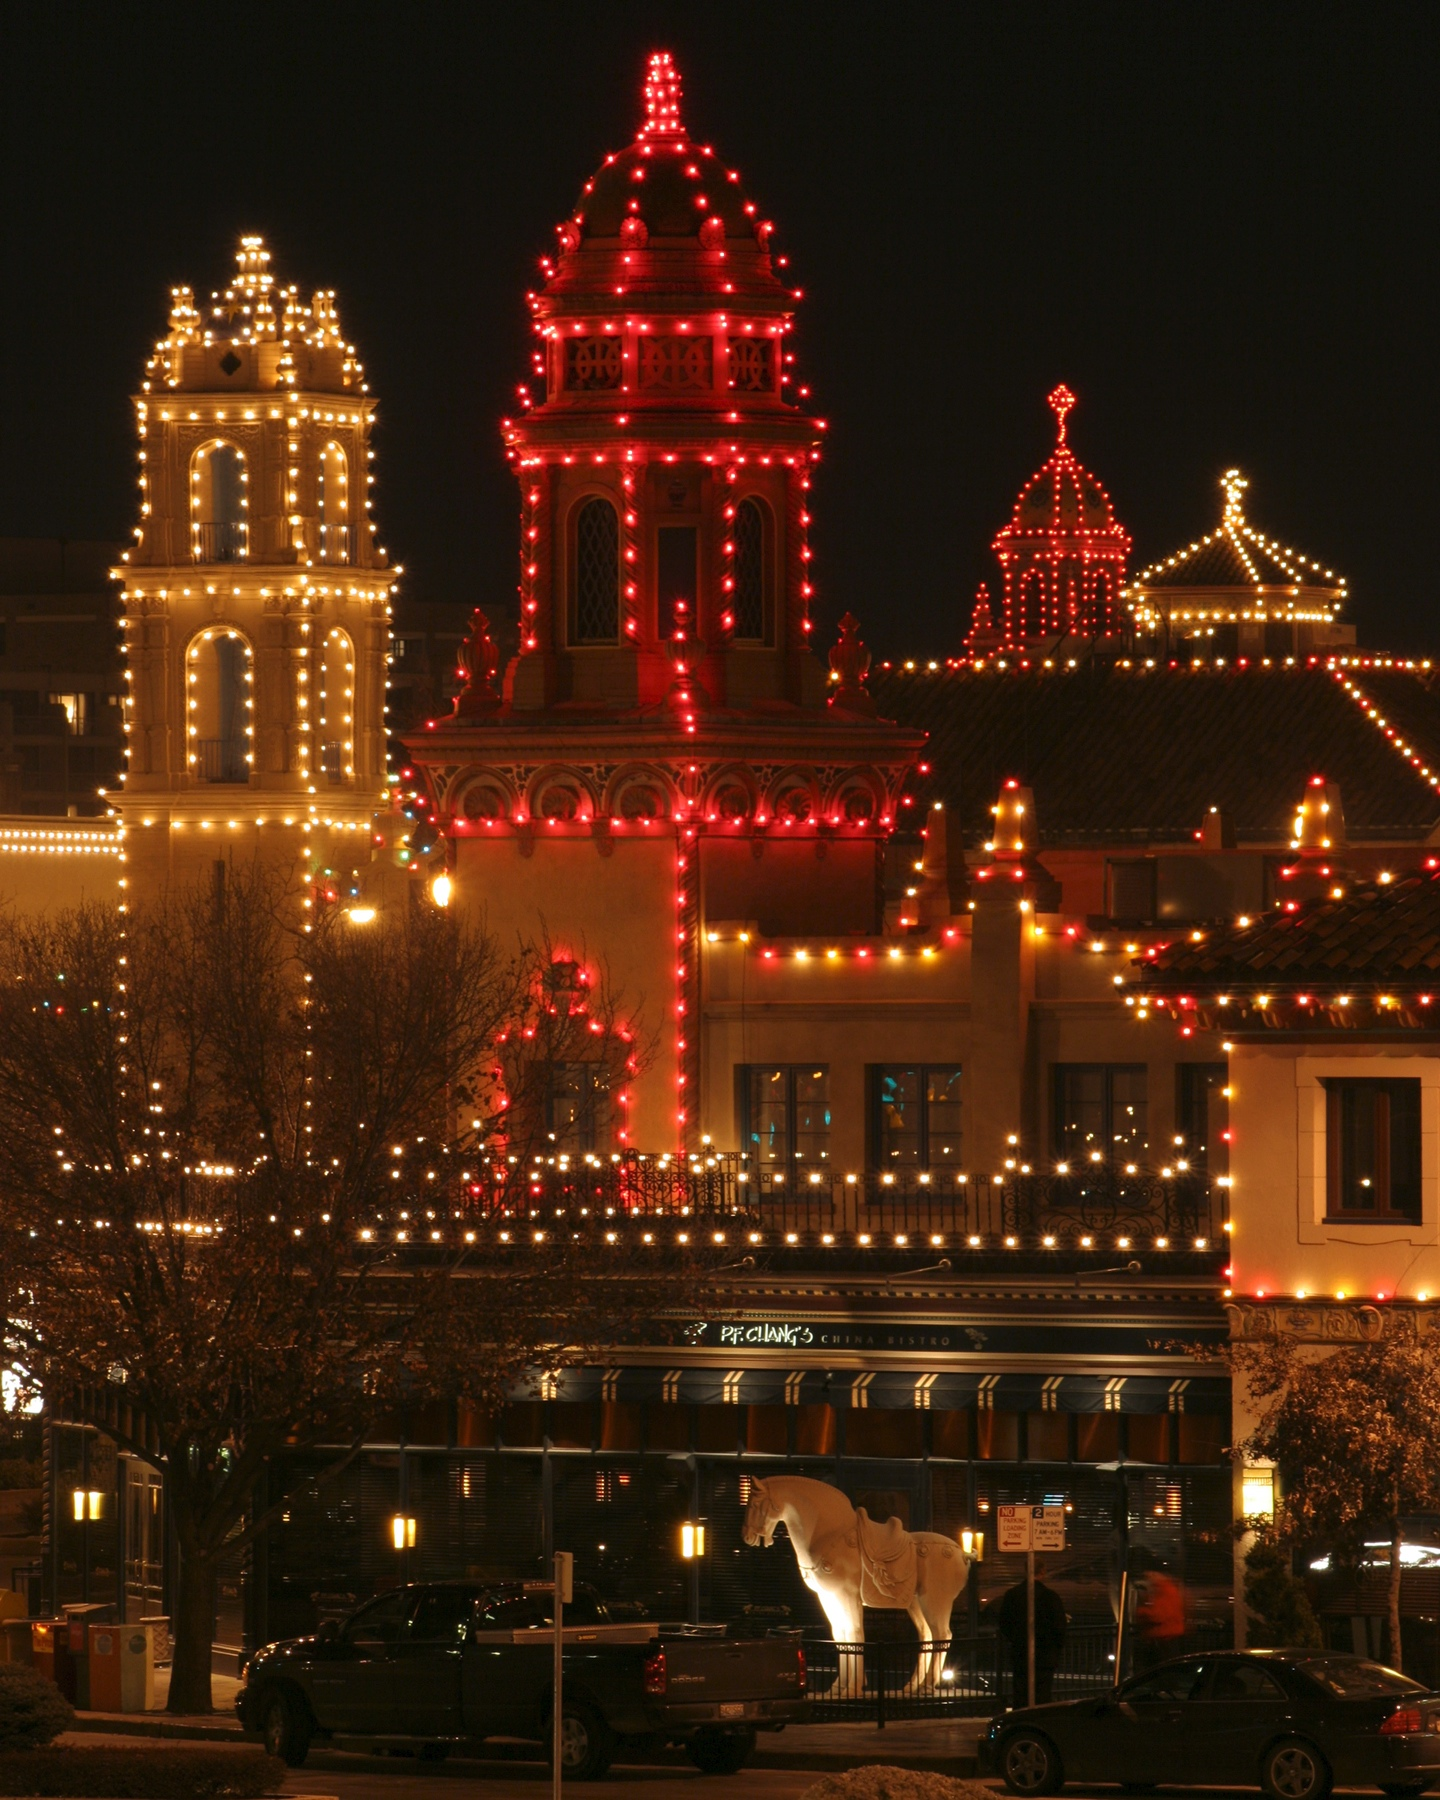 KC Country Club Plaza Christmas lights 2013 | homelessphilosopher